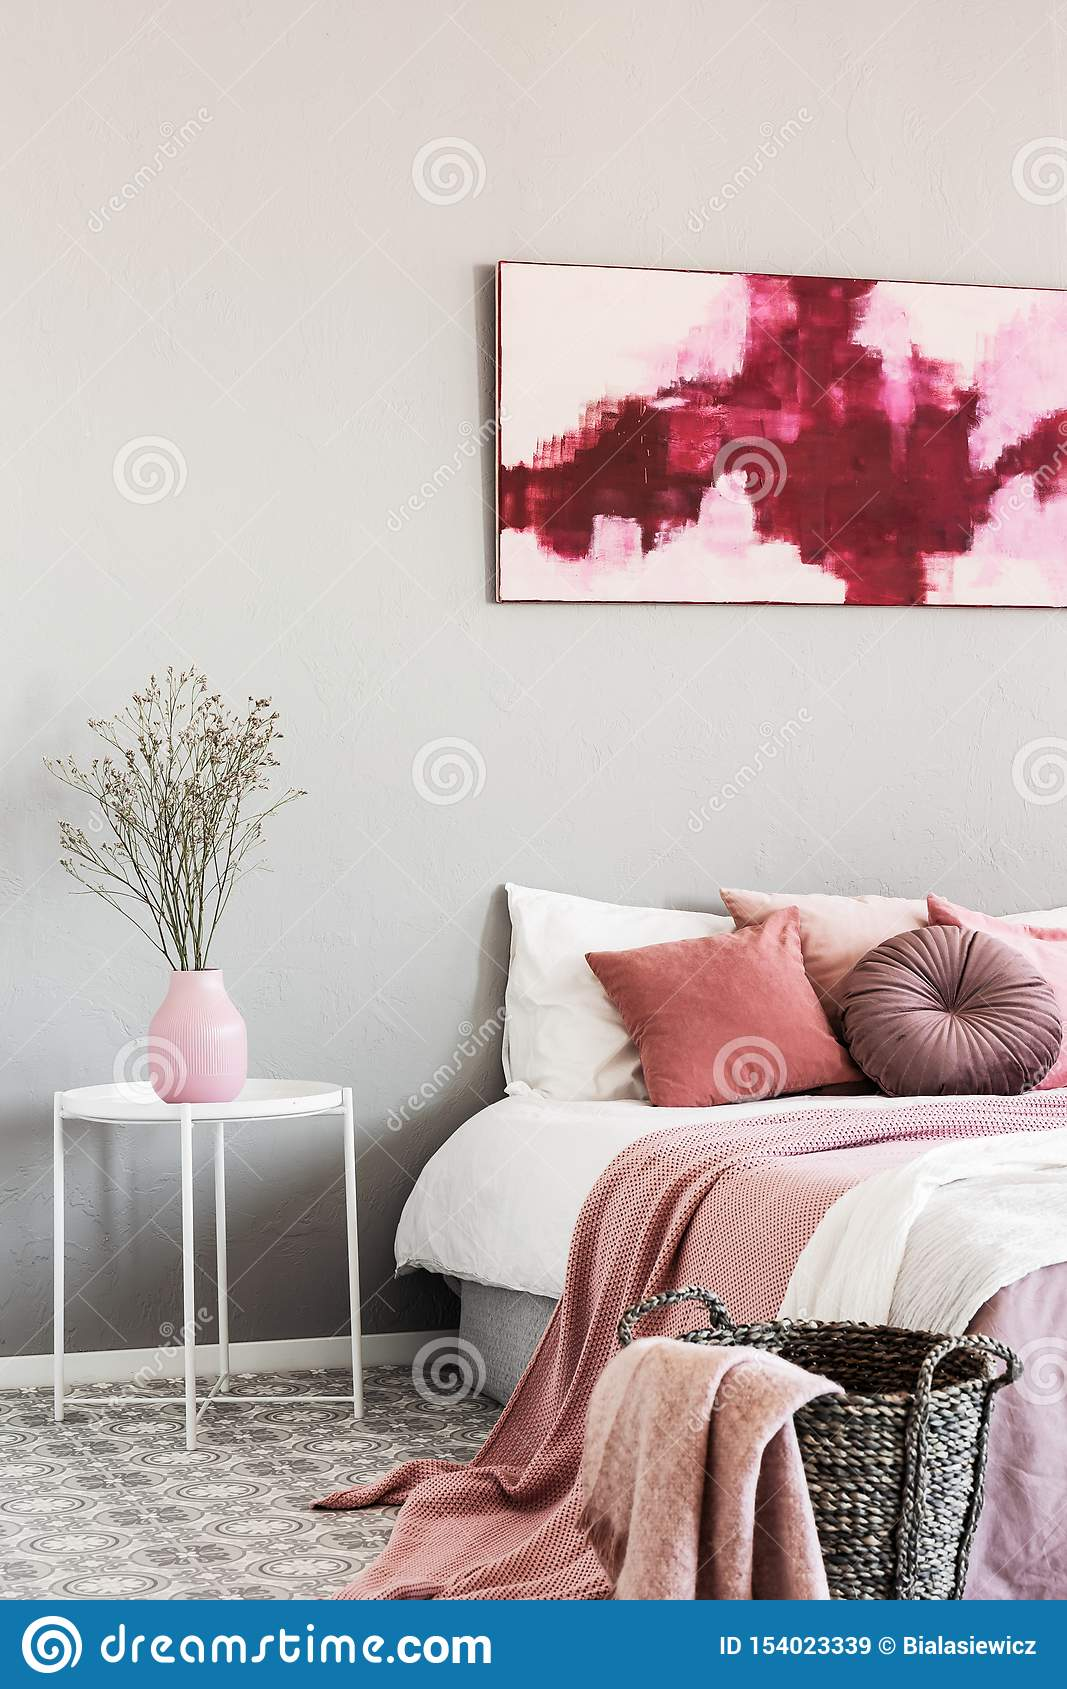 469 Burgundy Bedroom Photos Free Royalty Free Stock Photos From Dreamstime